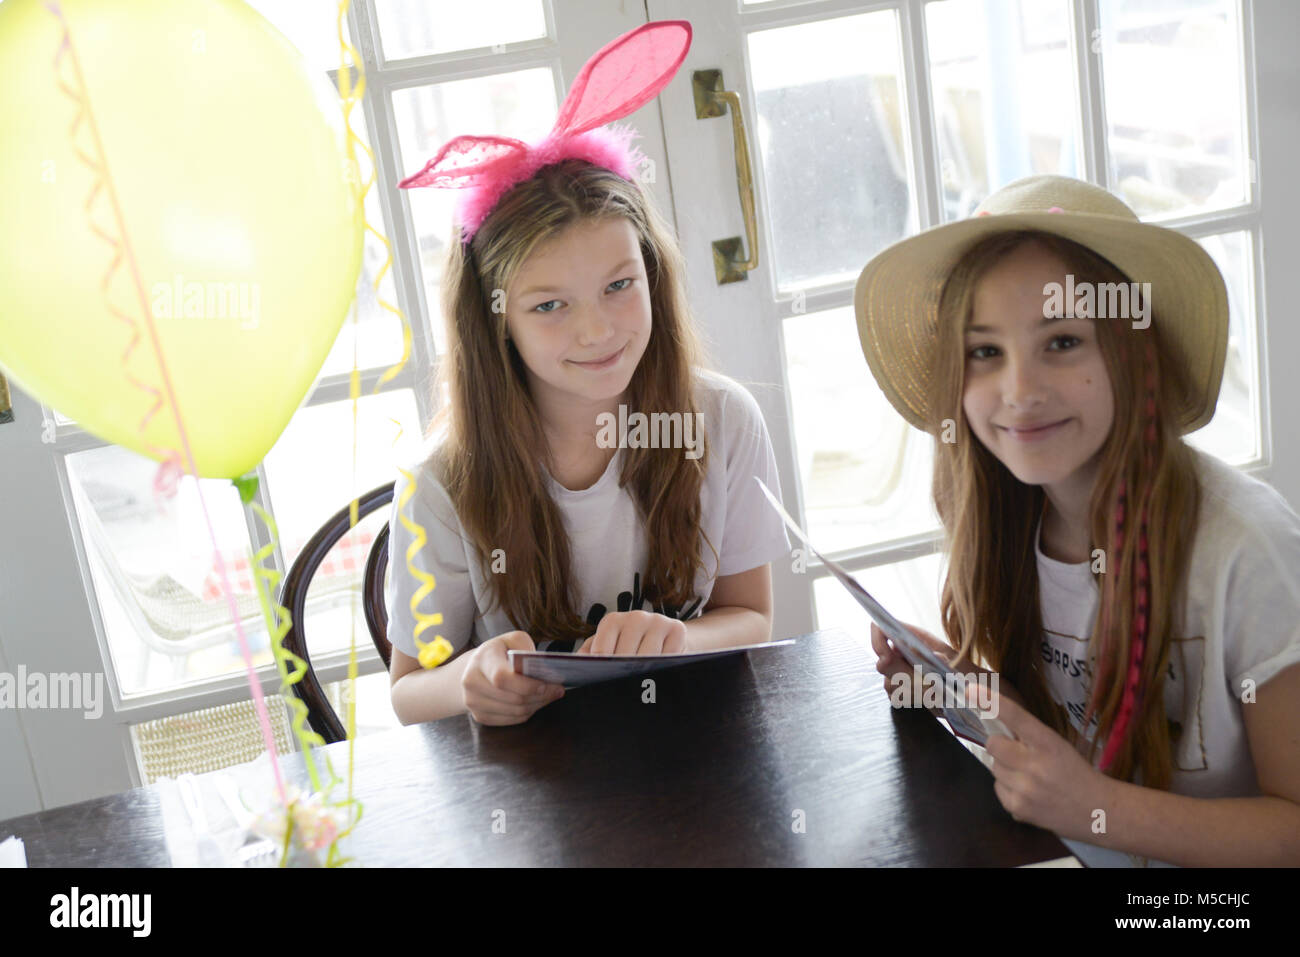 two young children are sitting at a party table eating fried food and drinking milkshakes- there are balloons and - Stock Image